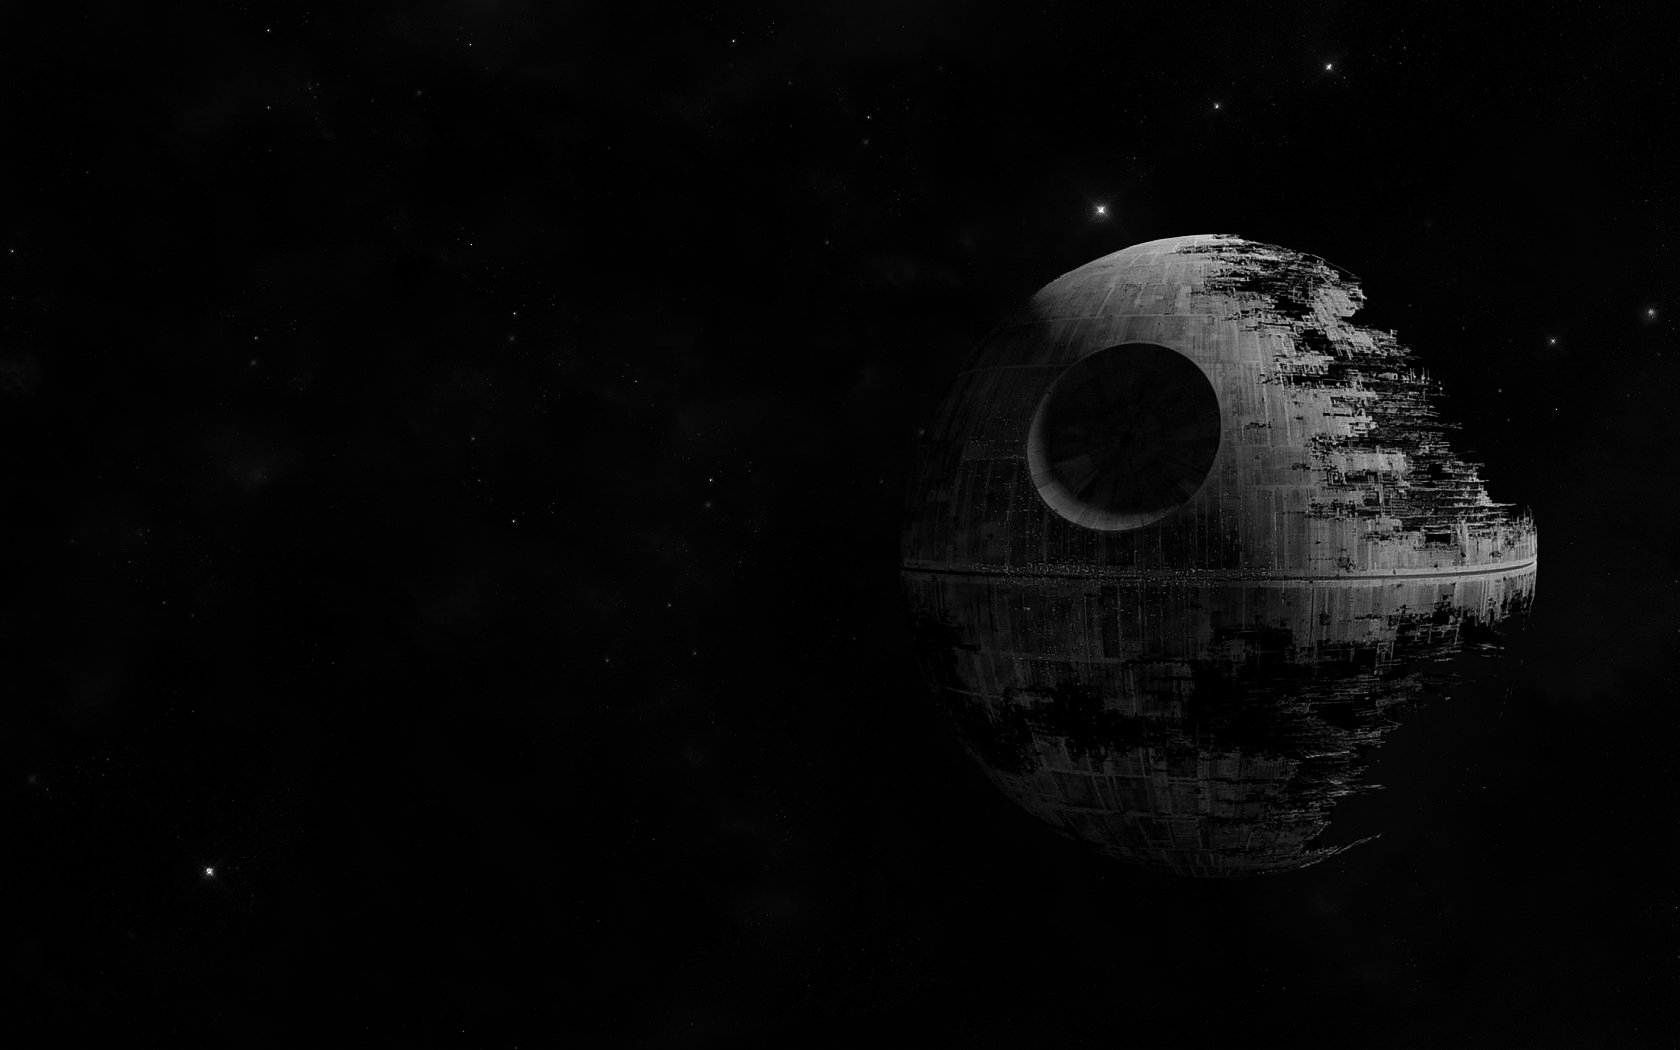 10 Top Star Wars Death Star Wallpaper FULL HD 1080p For PC Background